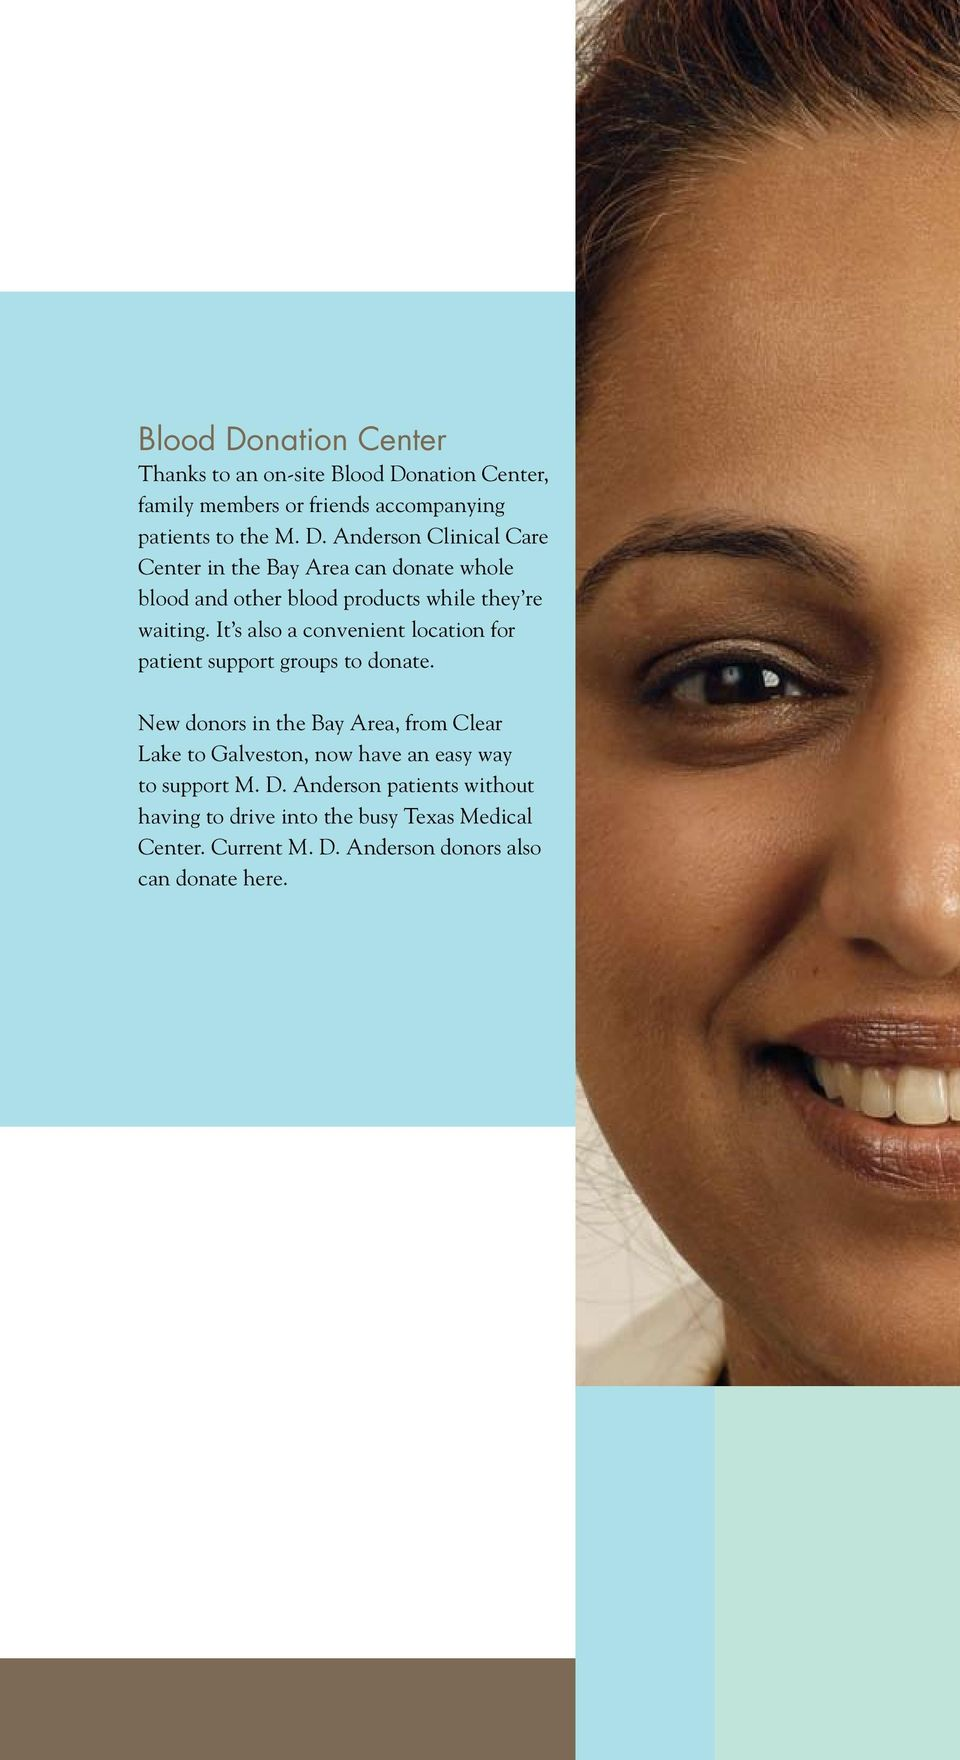 New donors in the Bay Area, from Clear Lake to Galveston, now have an easy way to support M. D.